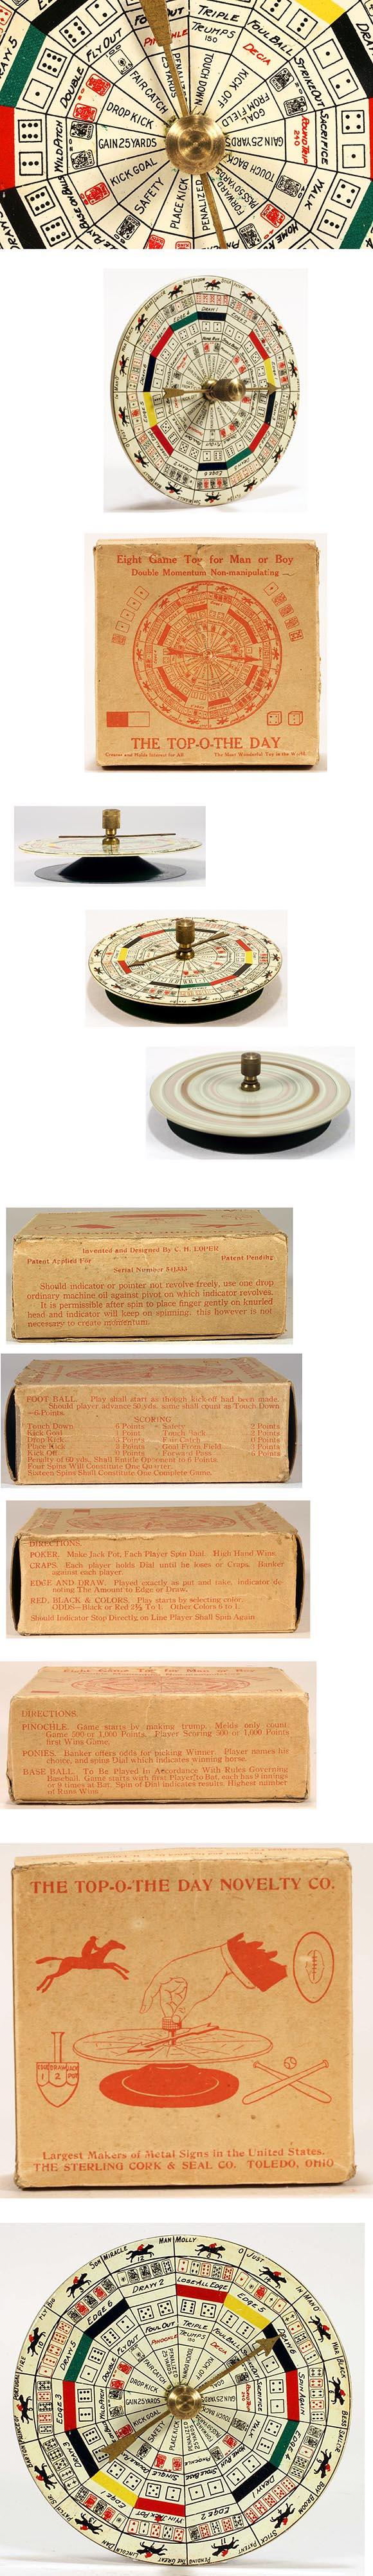 c.1925 Sterling Co., Top-O-The Day 8-Game in Original Box